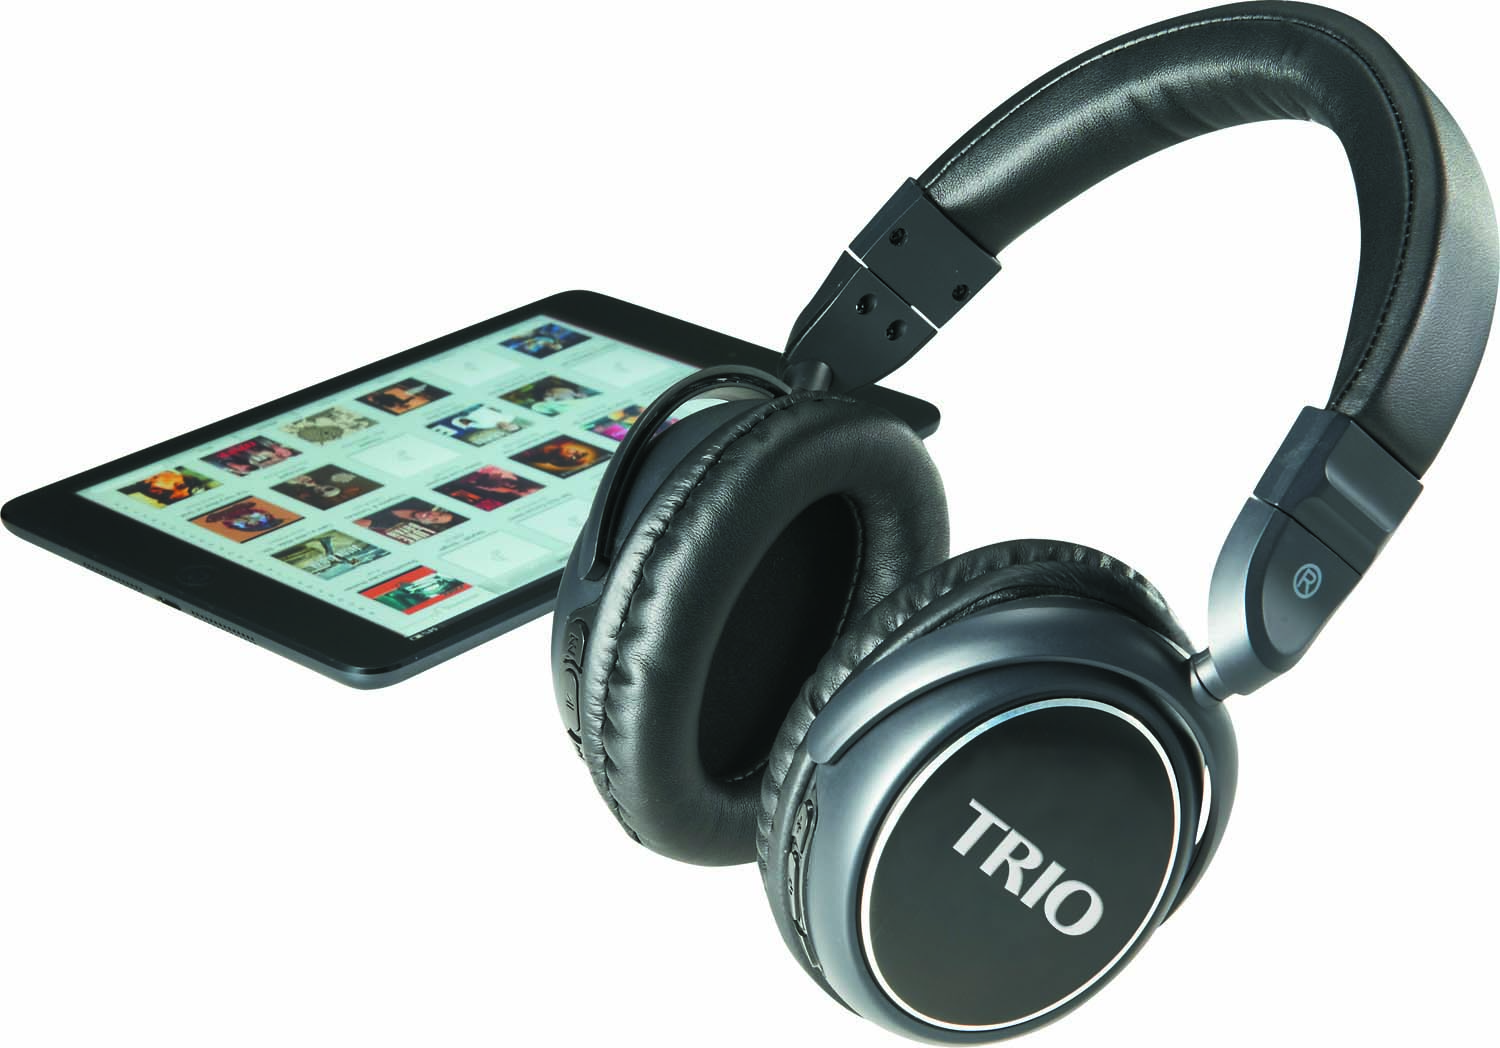 bluetooth titan headphones proforma trio ideas. Black Bedroom Furniture Sets. Home Design Ideas